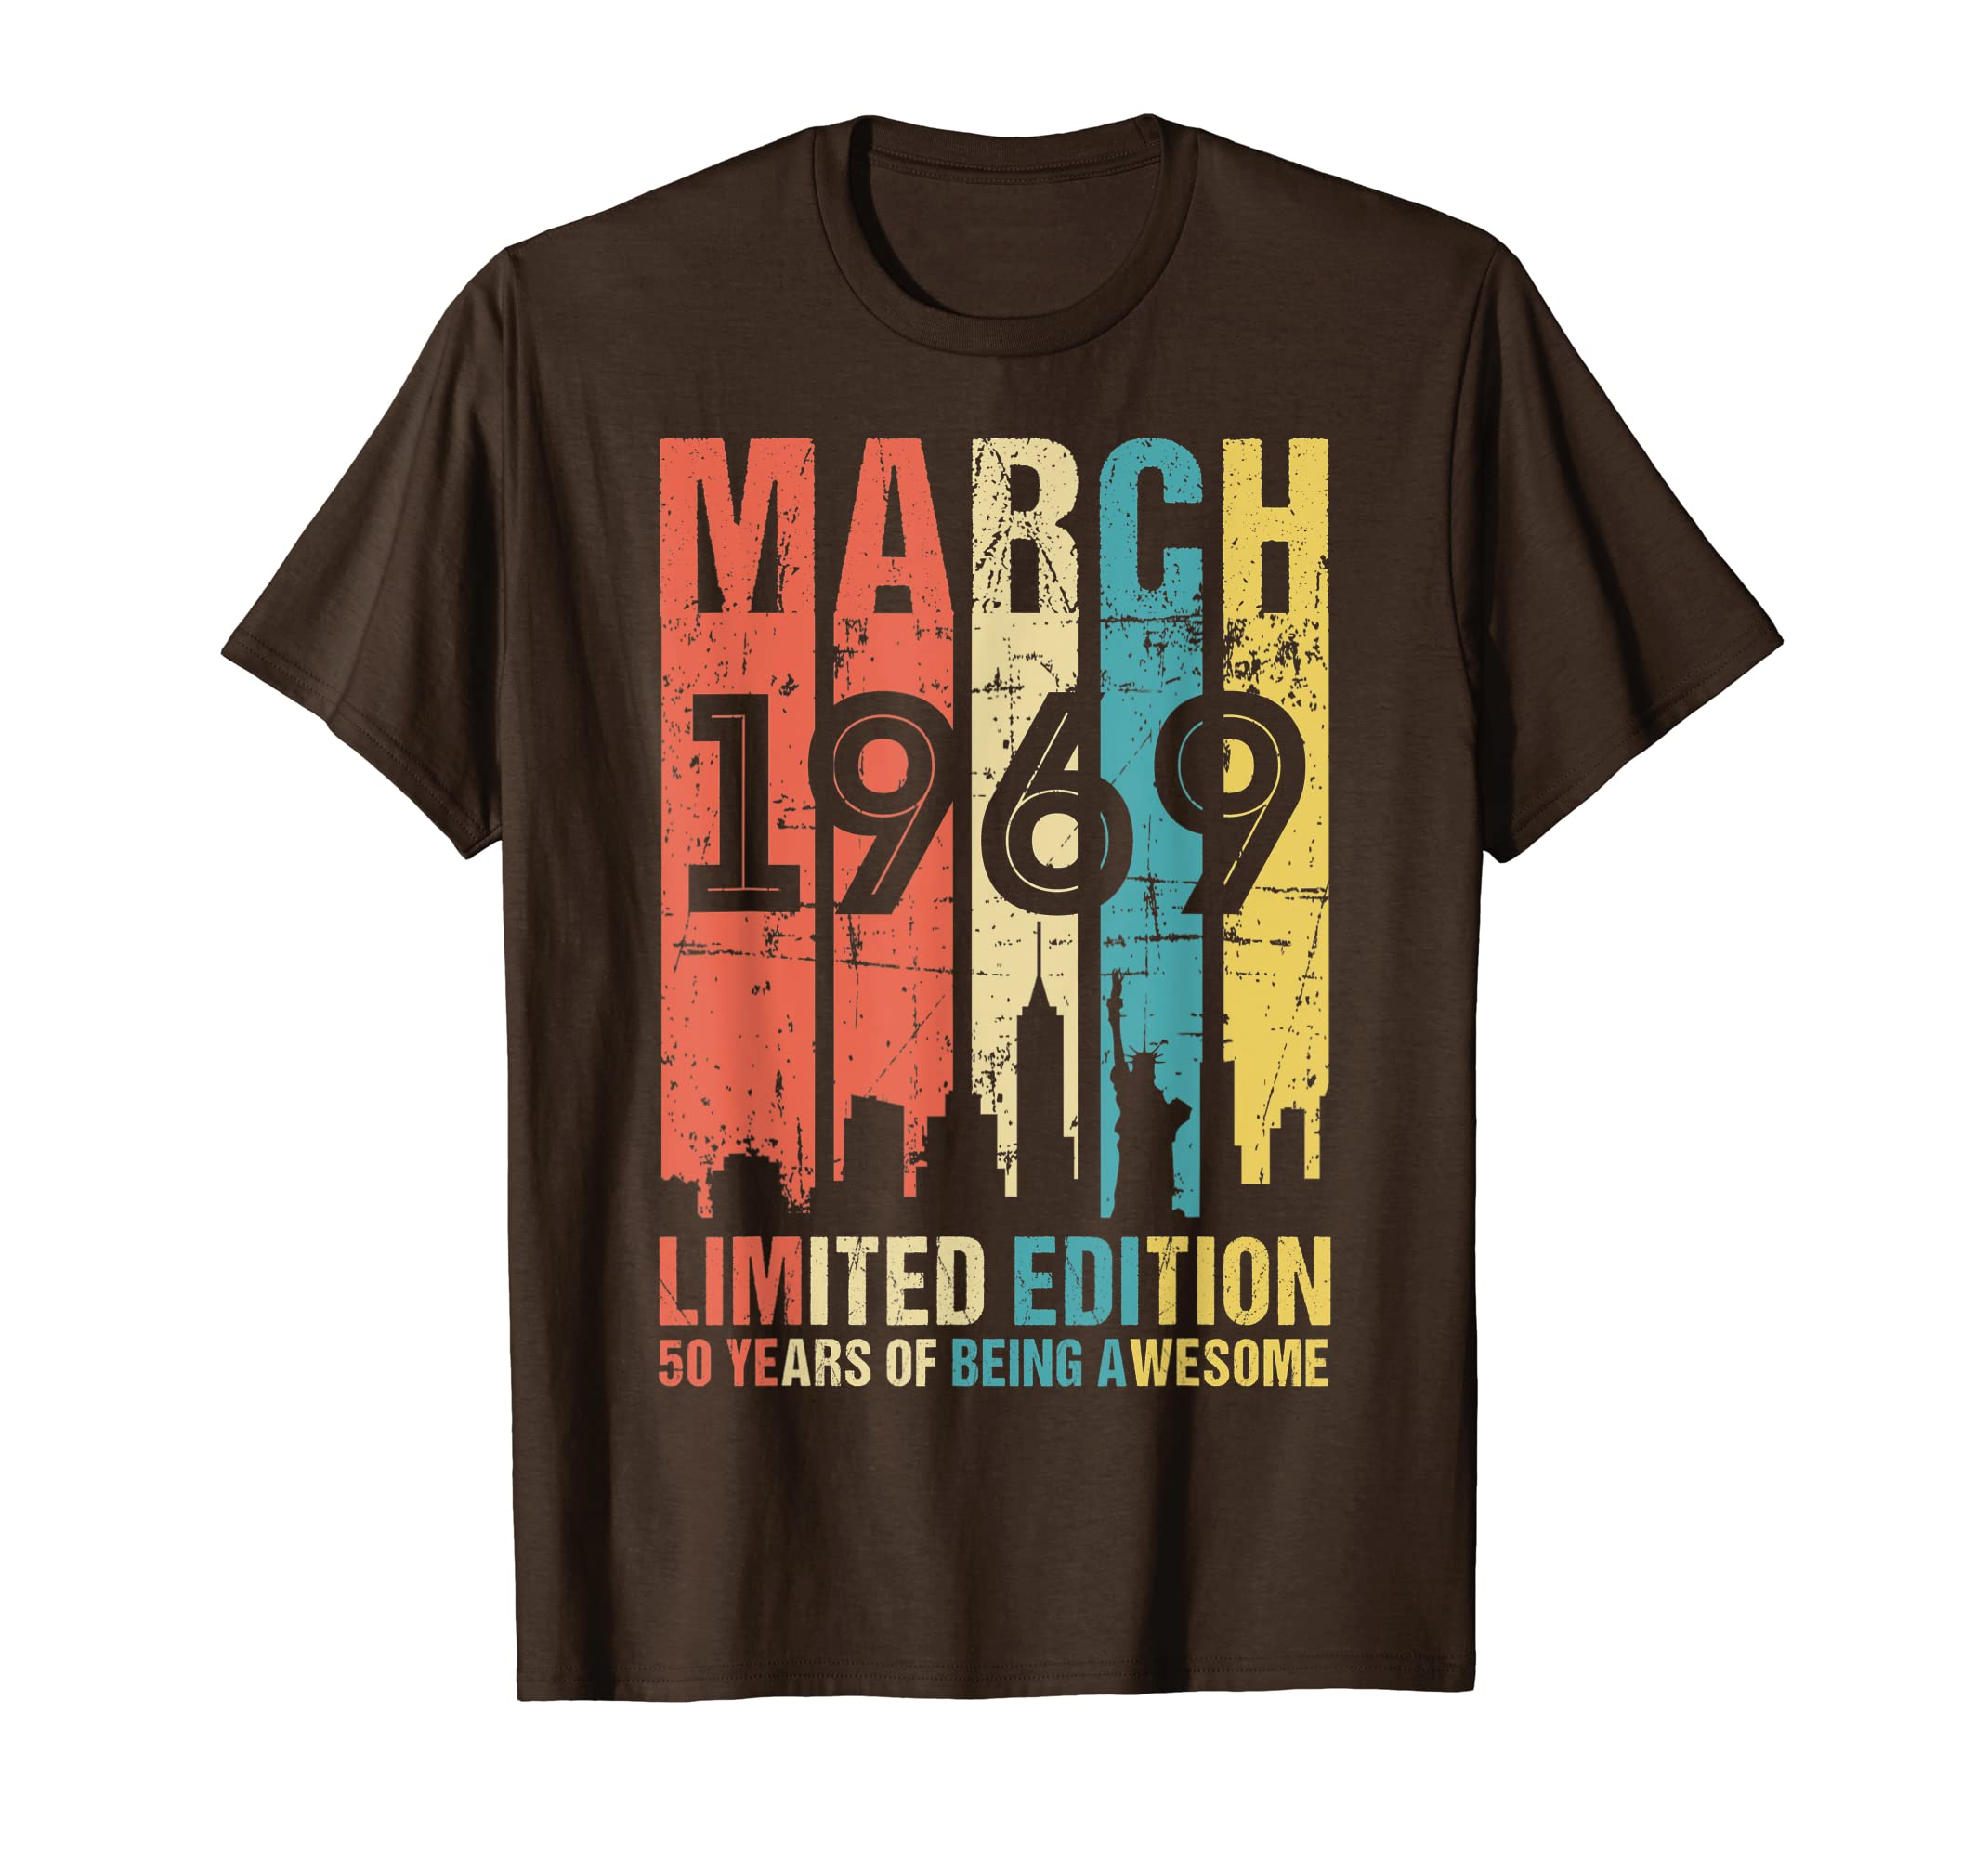 802fbad73be March 1969 T Shirt 50 Year Old Shirt 1969 Birthday Gift